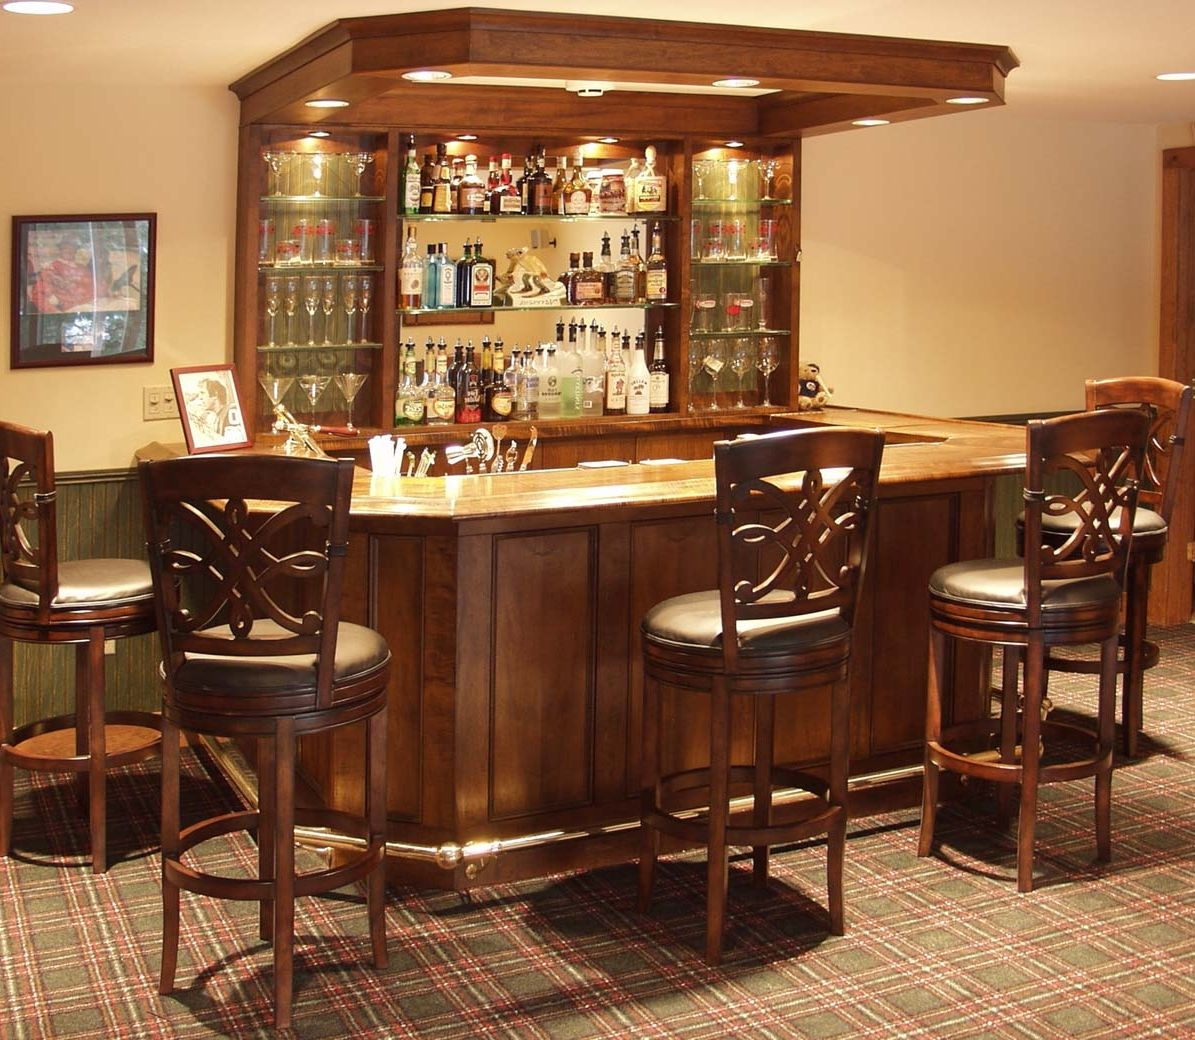 35 Best Home Bar Design Ideas  For the Home  Bars for home Home bar designs Home bar furniture